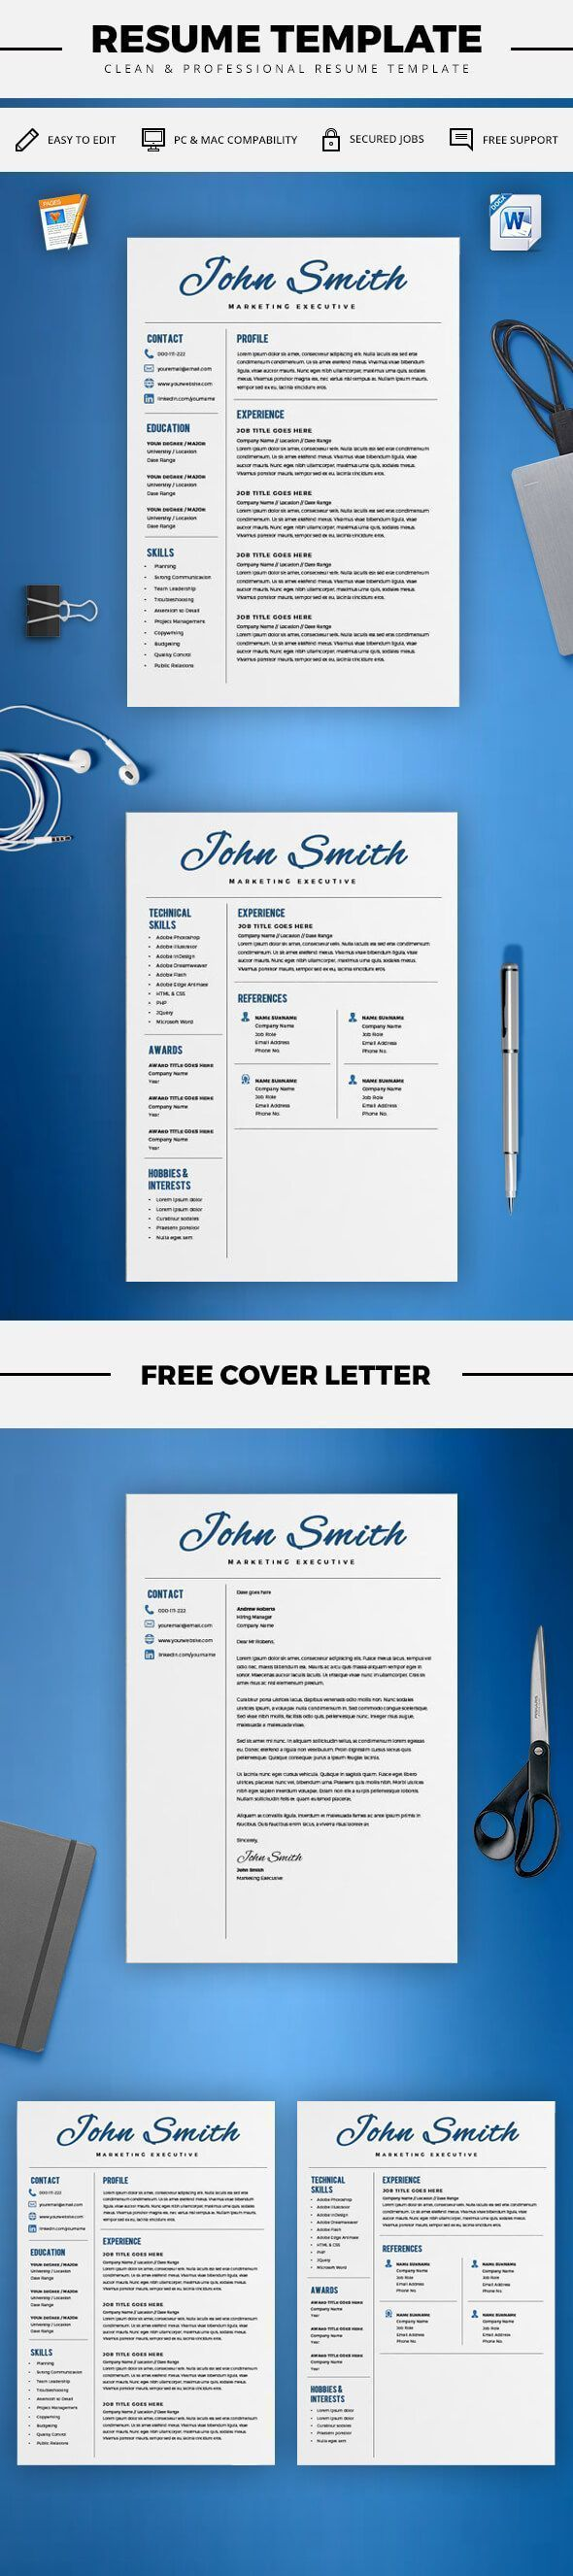 Creative Resume Template - CV Template + Cover Letter - Word and ...